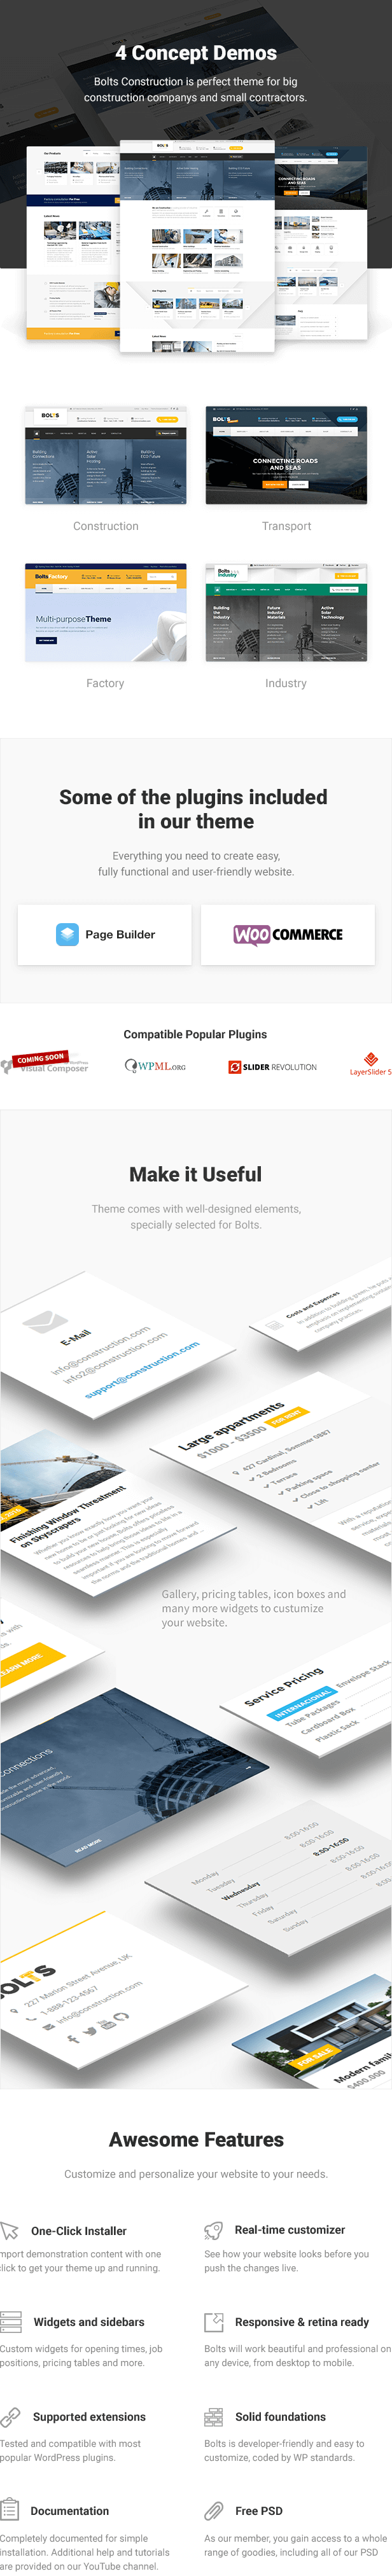 Bolts - Construction Theme For Medium to Large Business